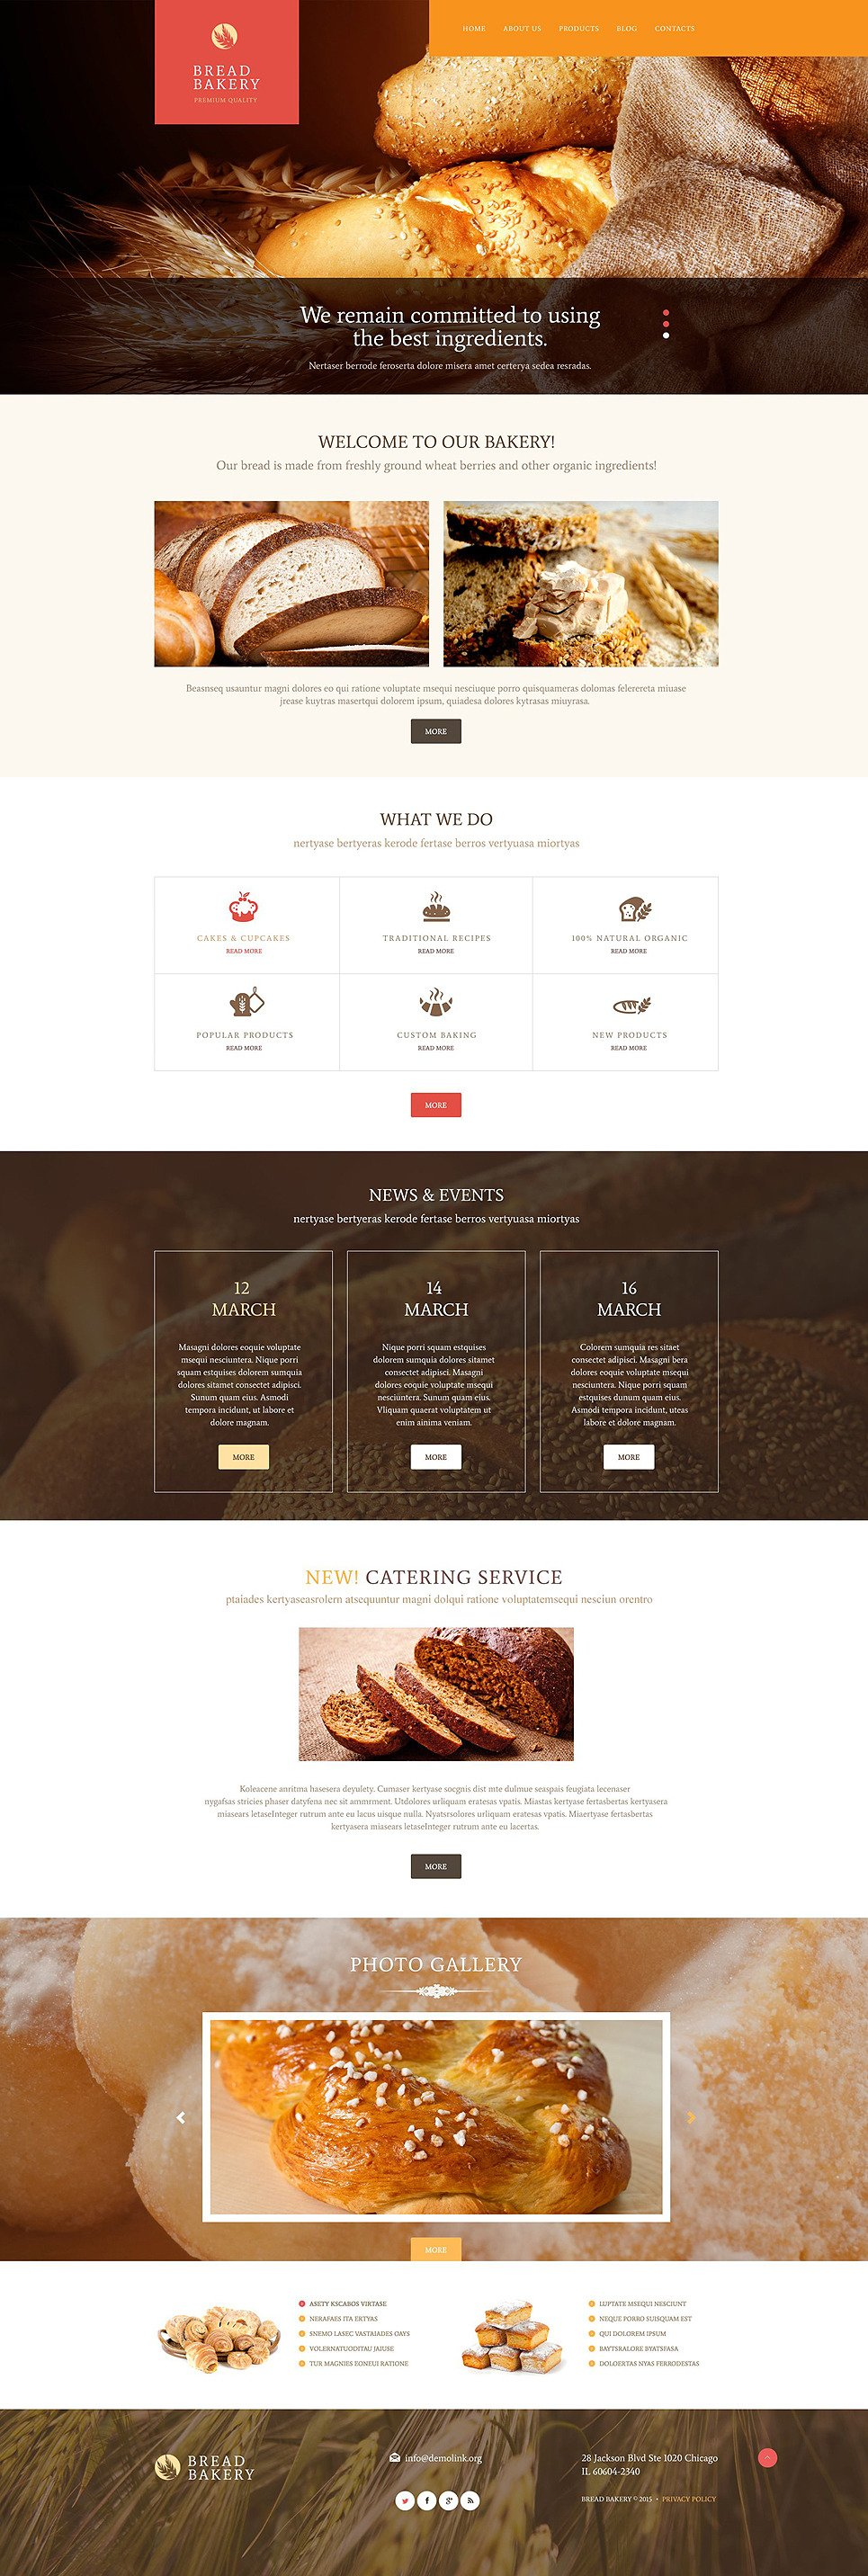 Bread Bakery PSD Template New Screenshots BIG